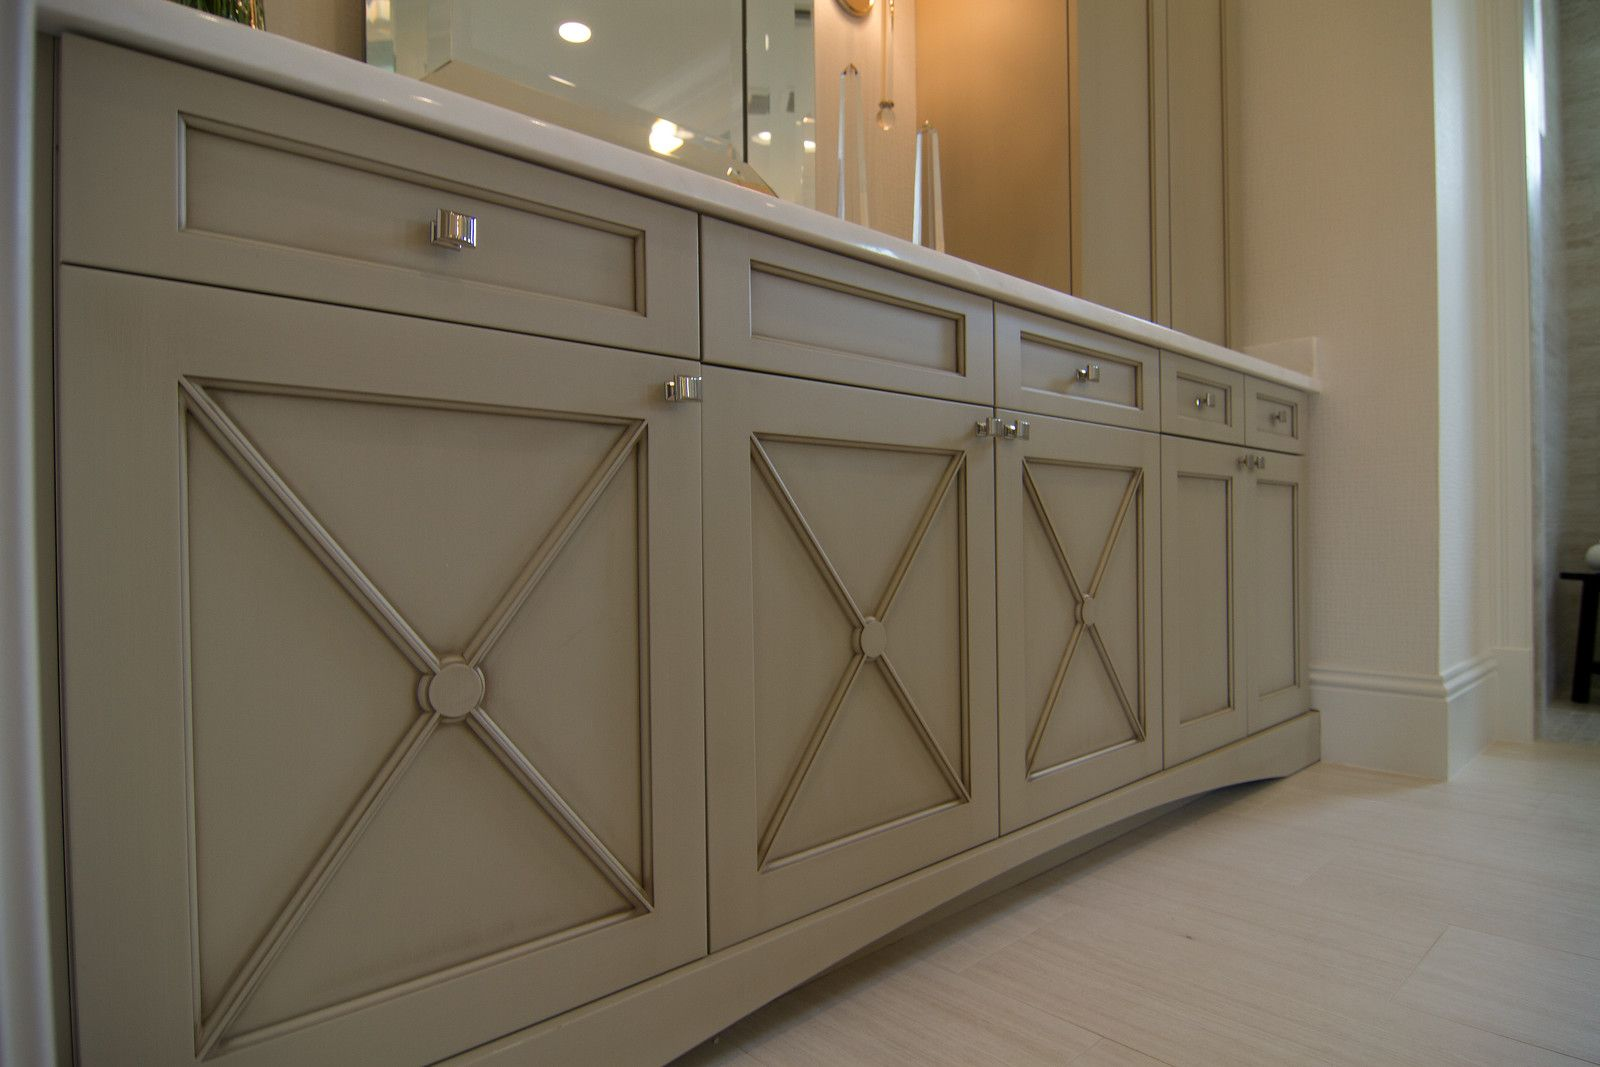 Pin By Mccabinet Inc On Mccabinet Mcprojects Quality Cabinets Home Decor Cabinet